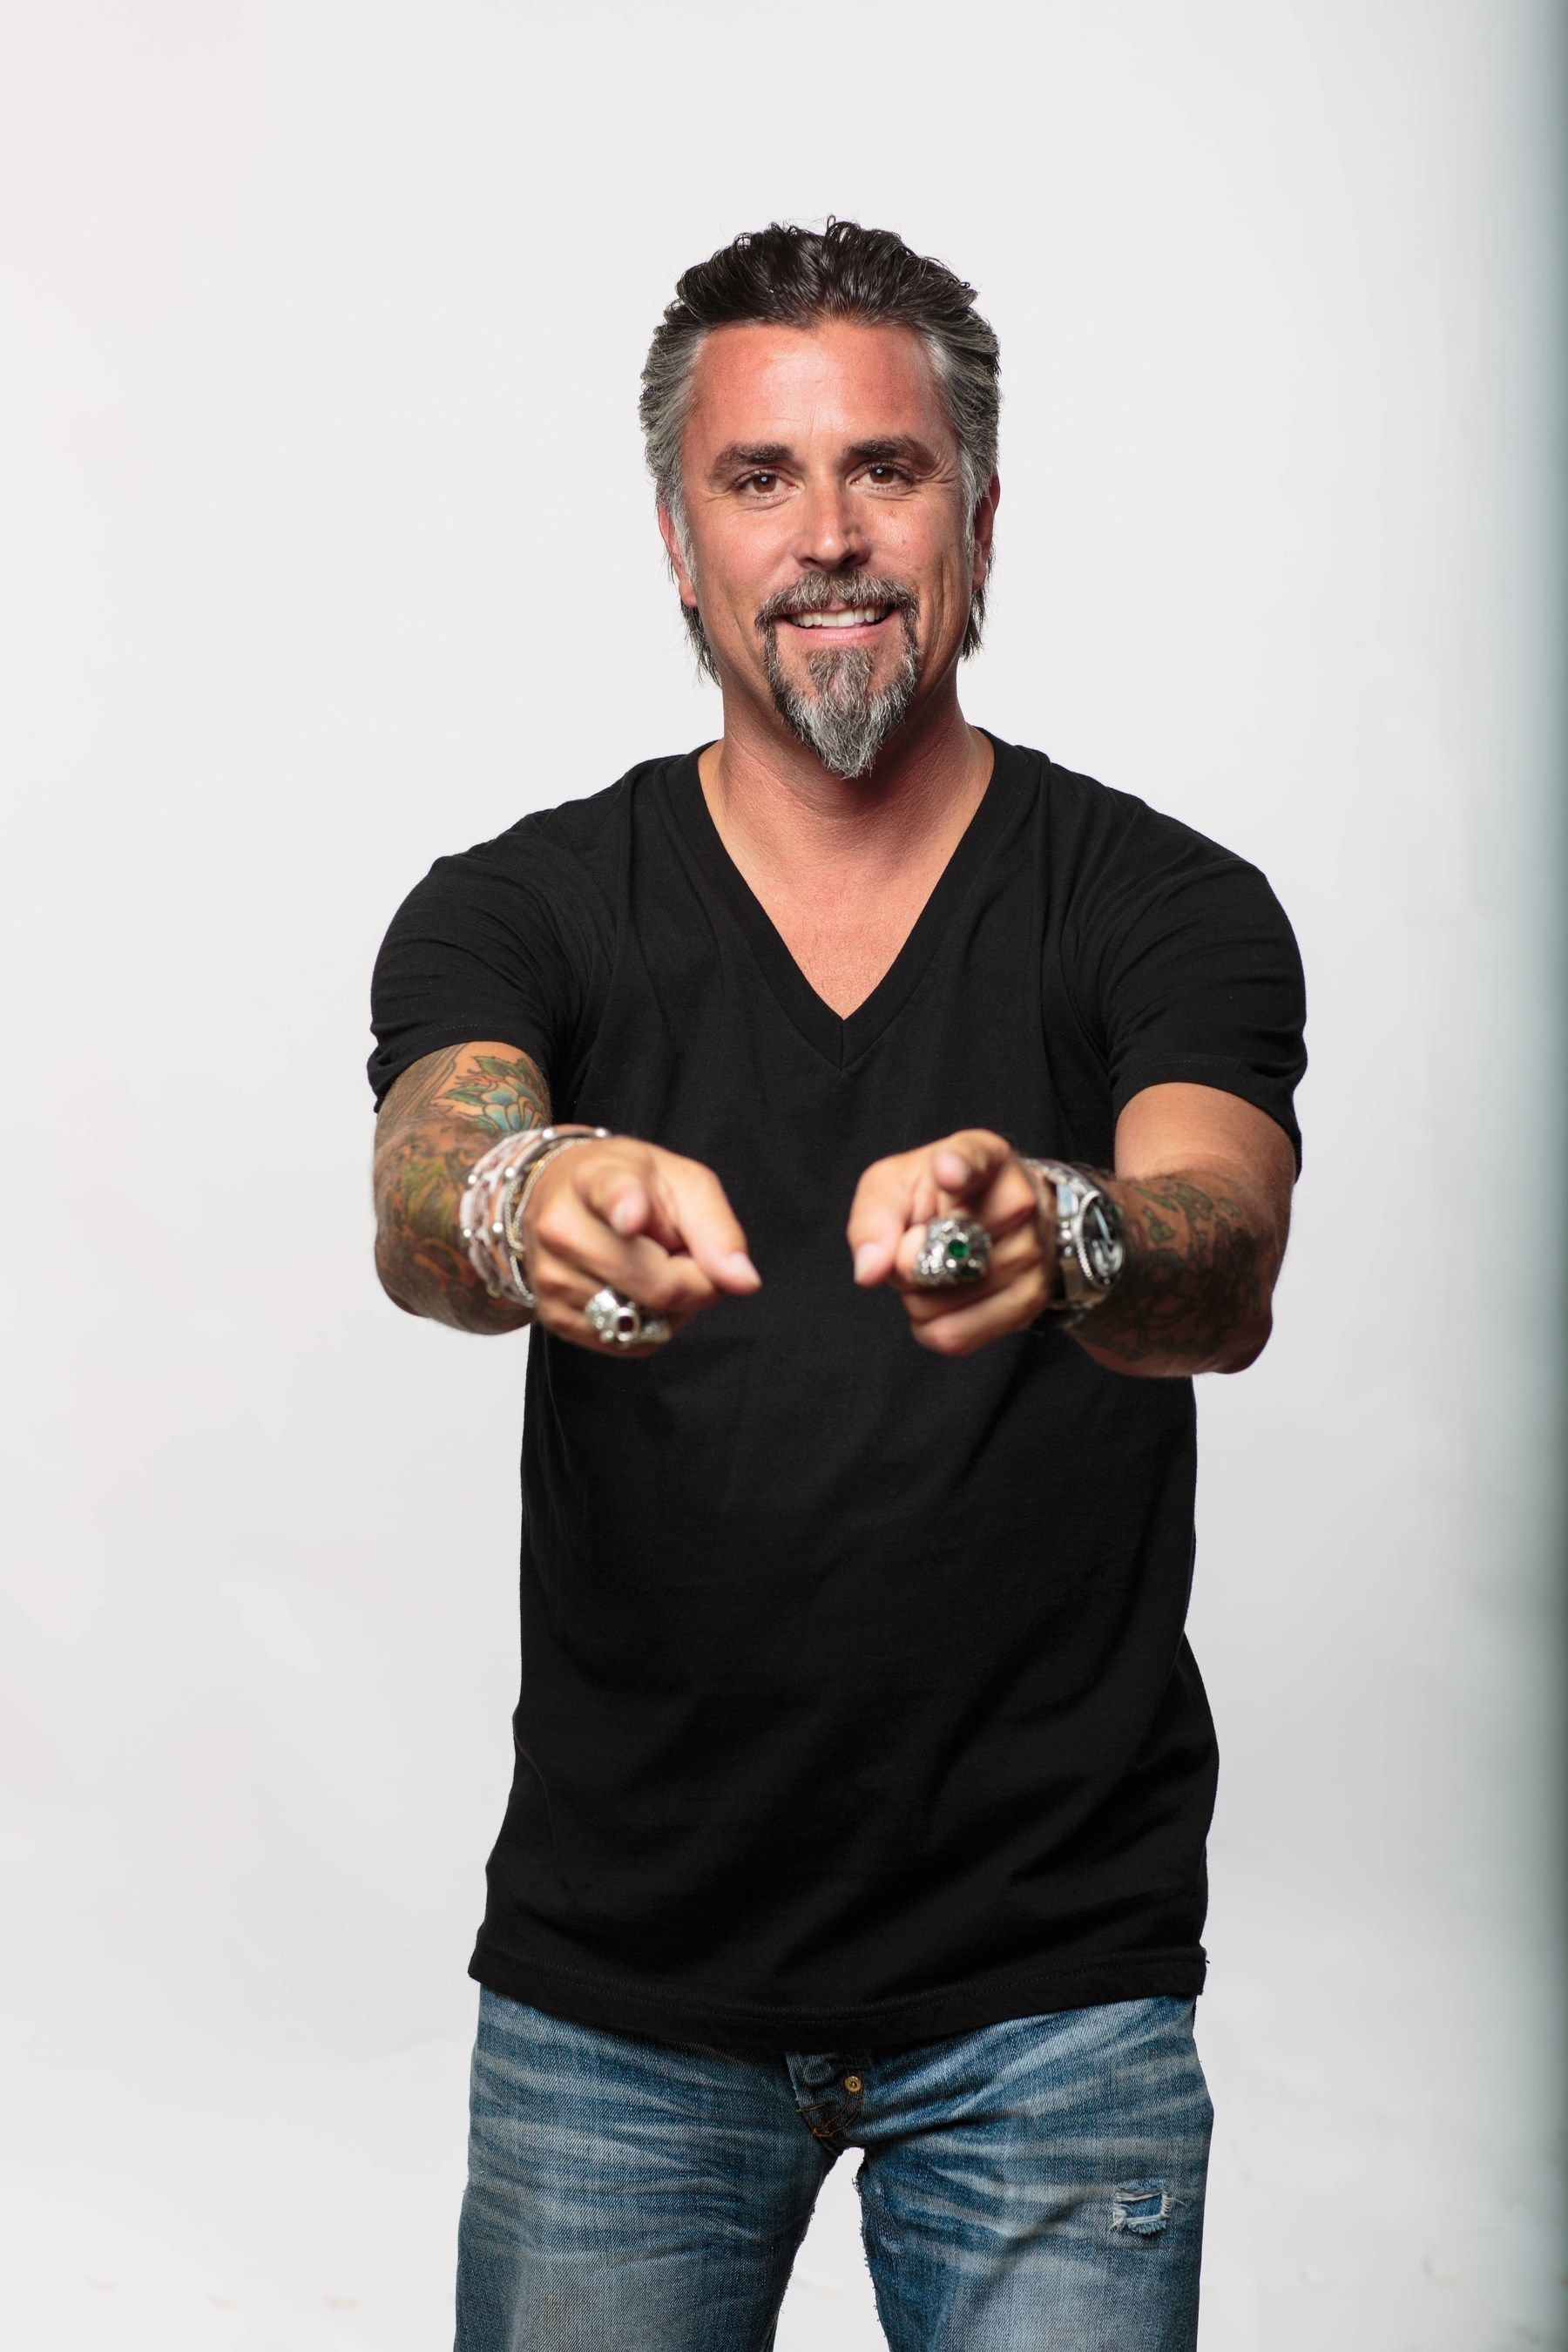 Richard rawlings gas monkey garage scandal -  Gas Monkey Garage Apparel Pr Newswire For Journalists Texas Red Partners With Gas Monkey Garage And